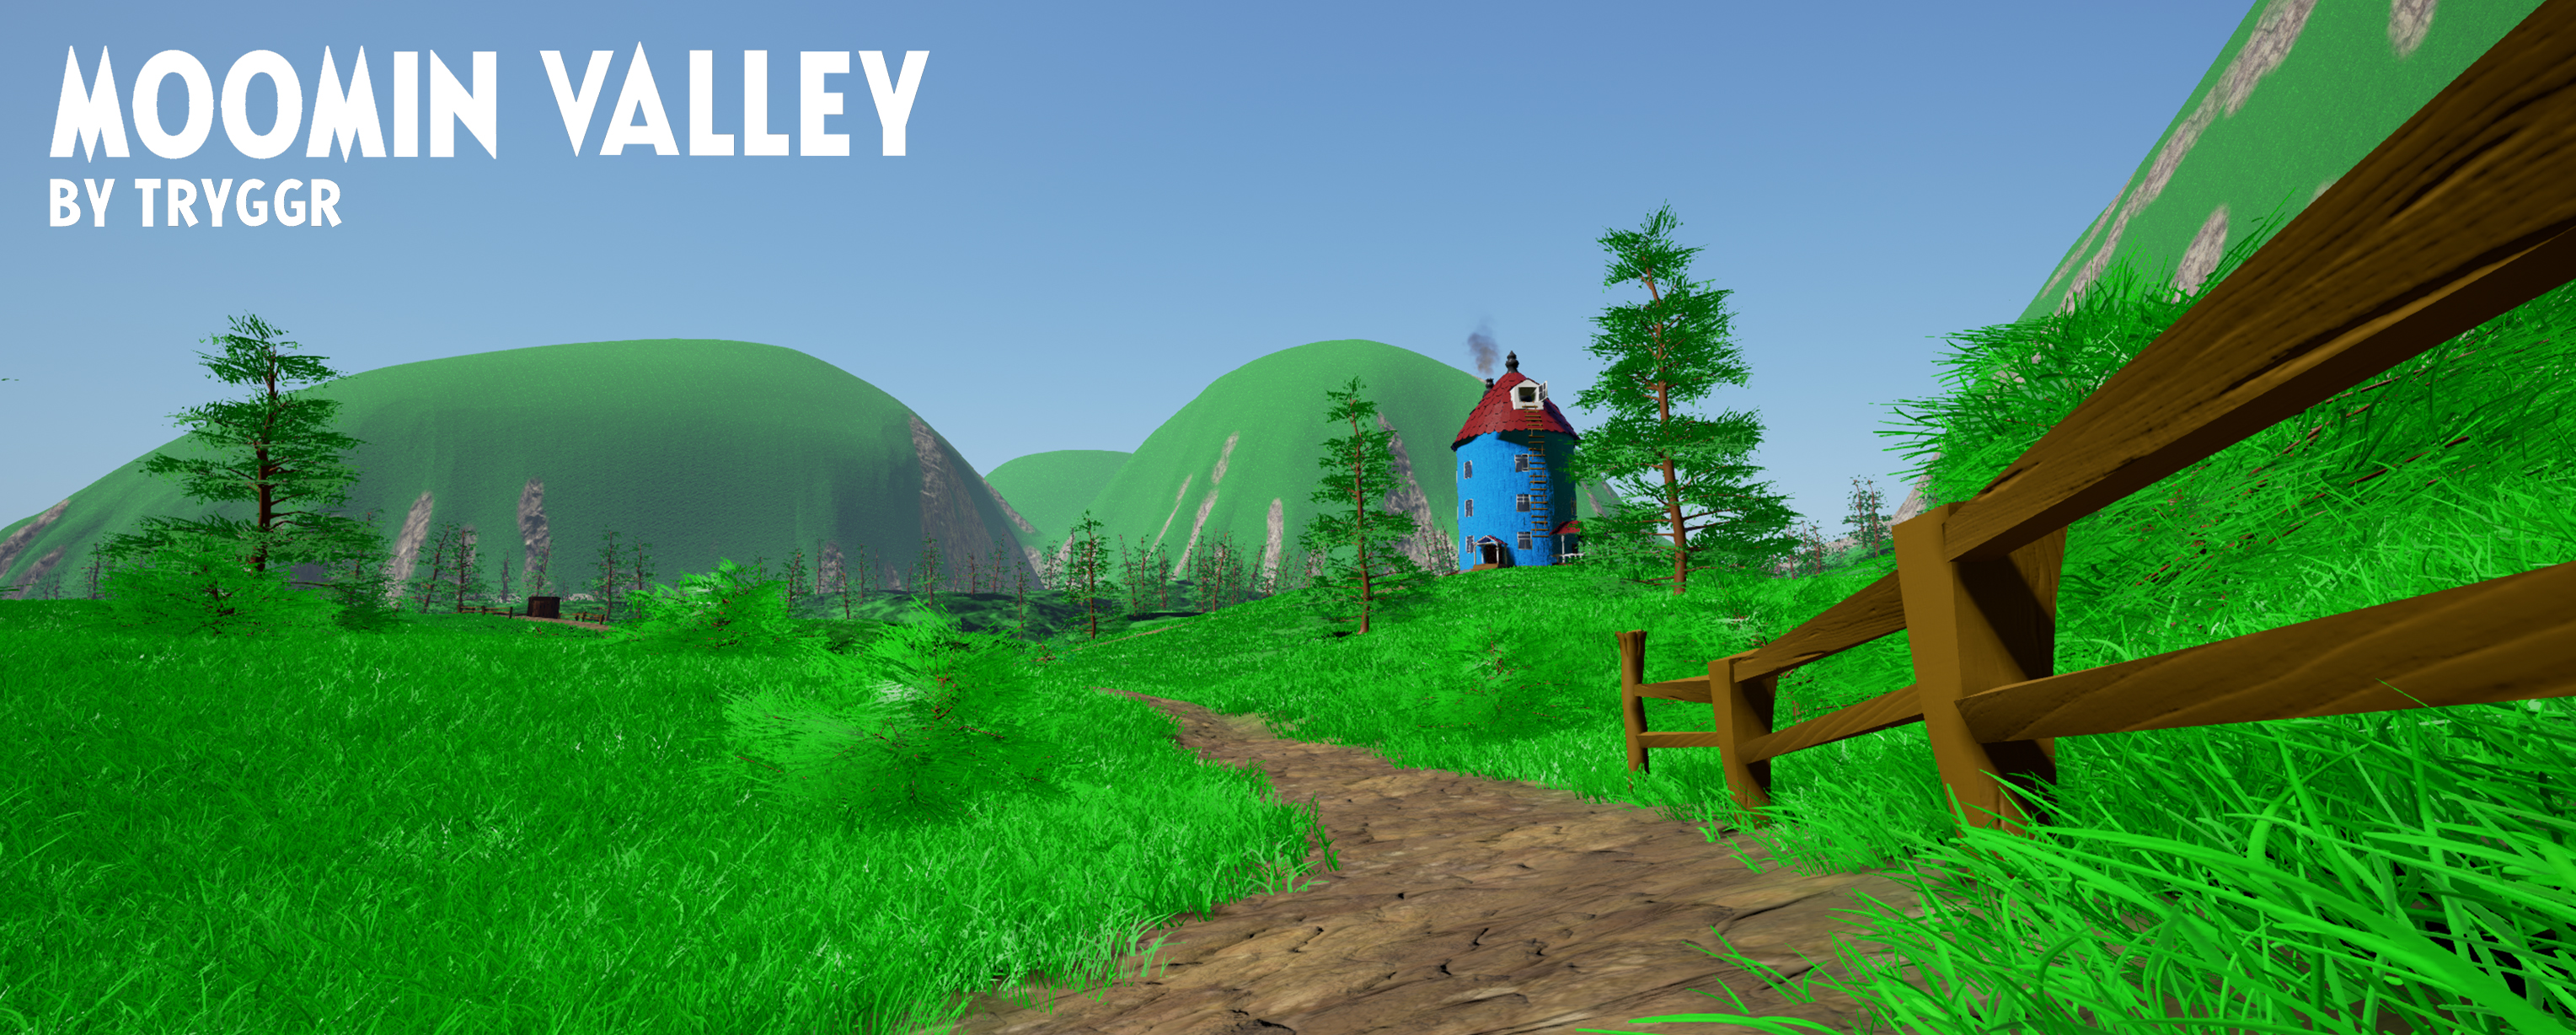 MOOMINVALLEY_VIEW1_L